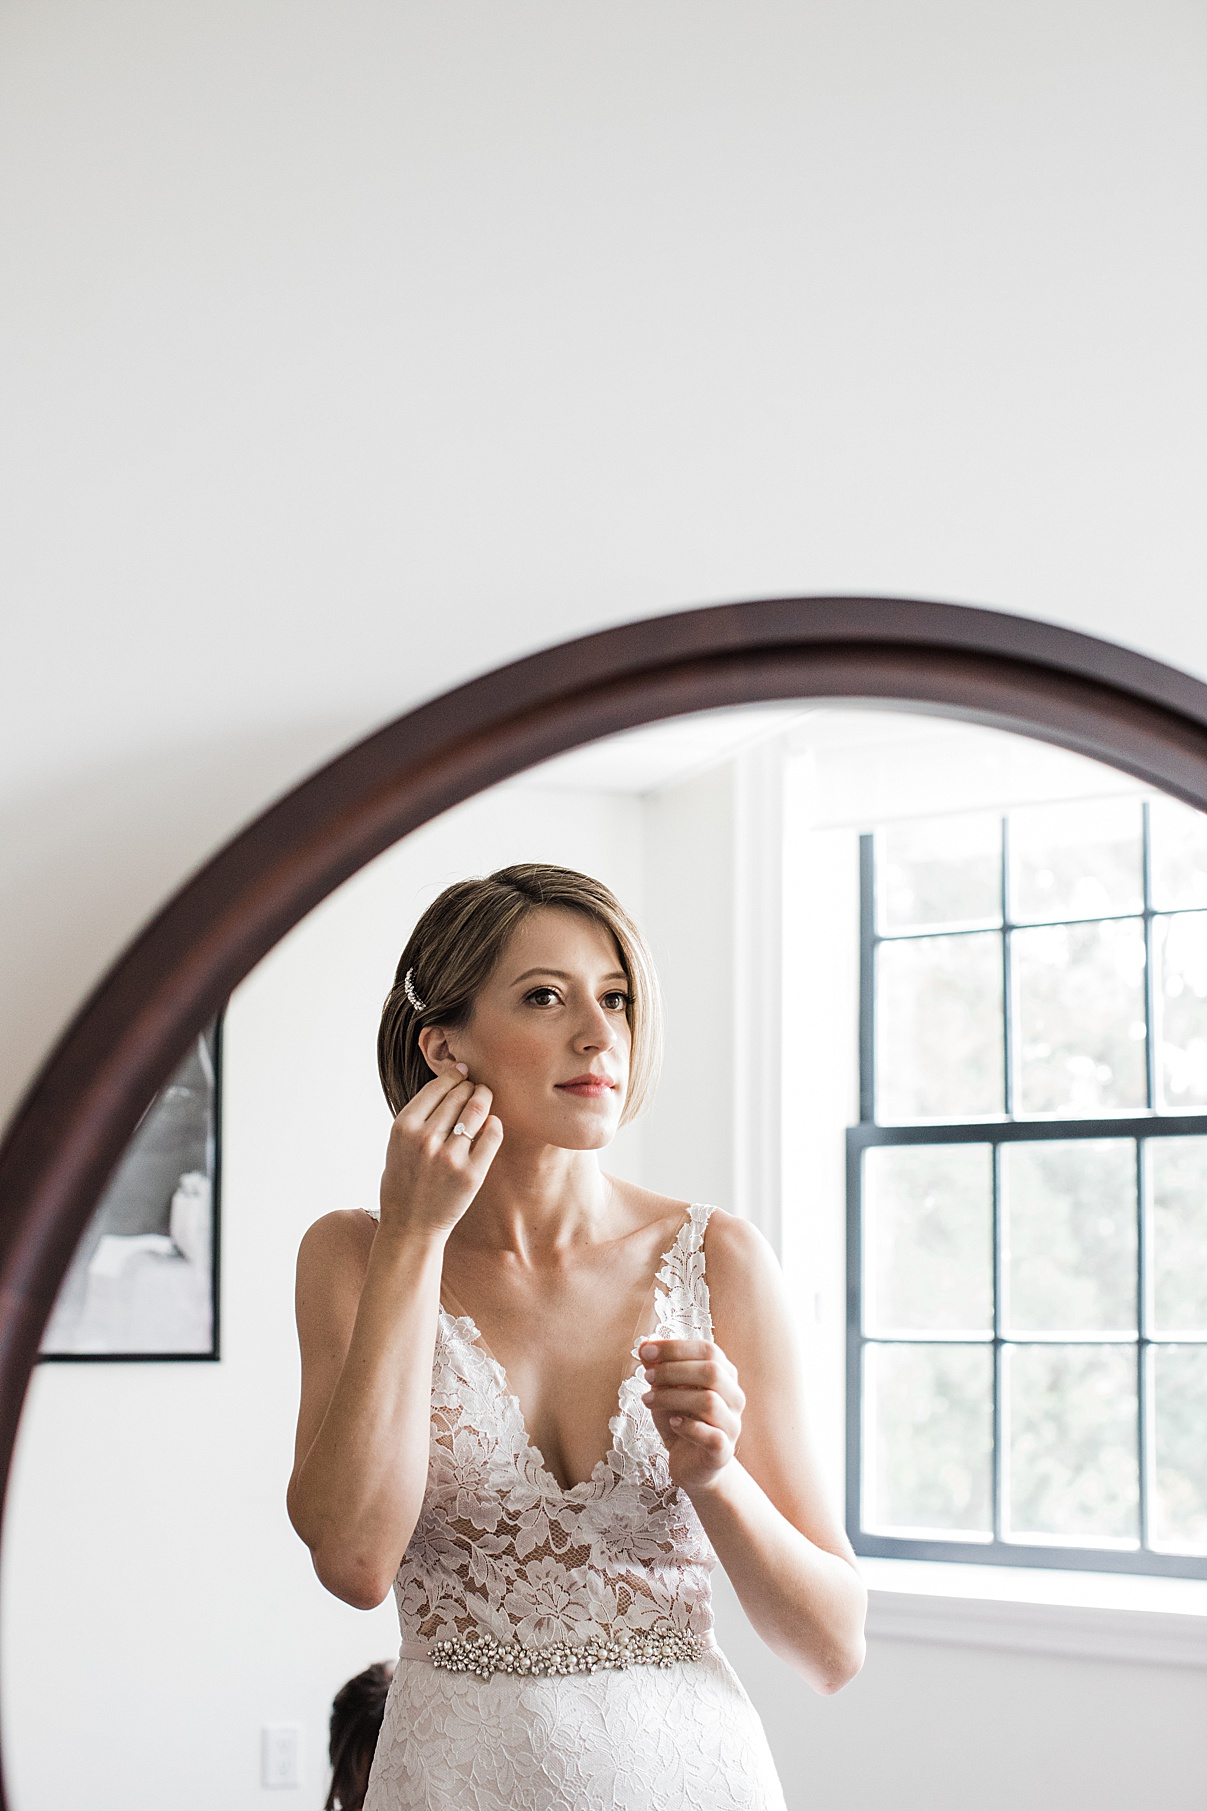 Bride putting earrings on in mirror| Harding Waterfront Estate Wedding| Ontario wedding photographer| Toronto wedding photographer| 3 Photography | 3photography.ca